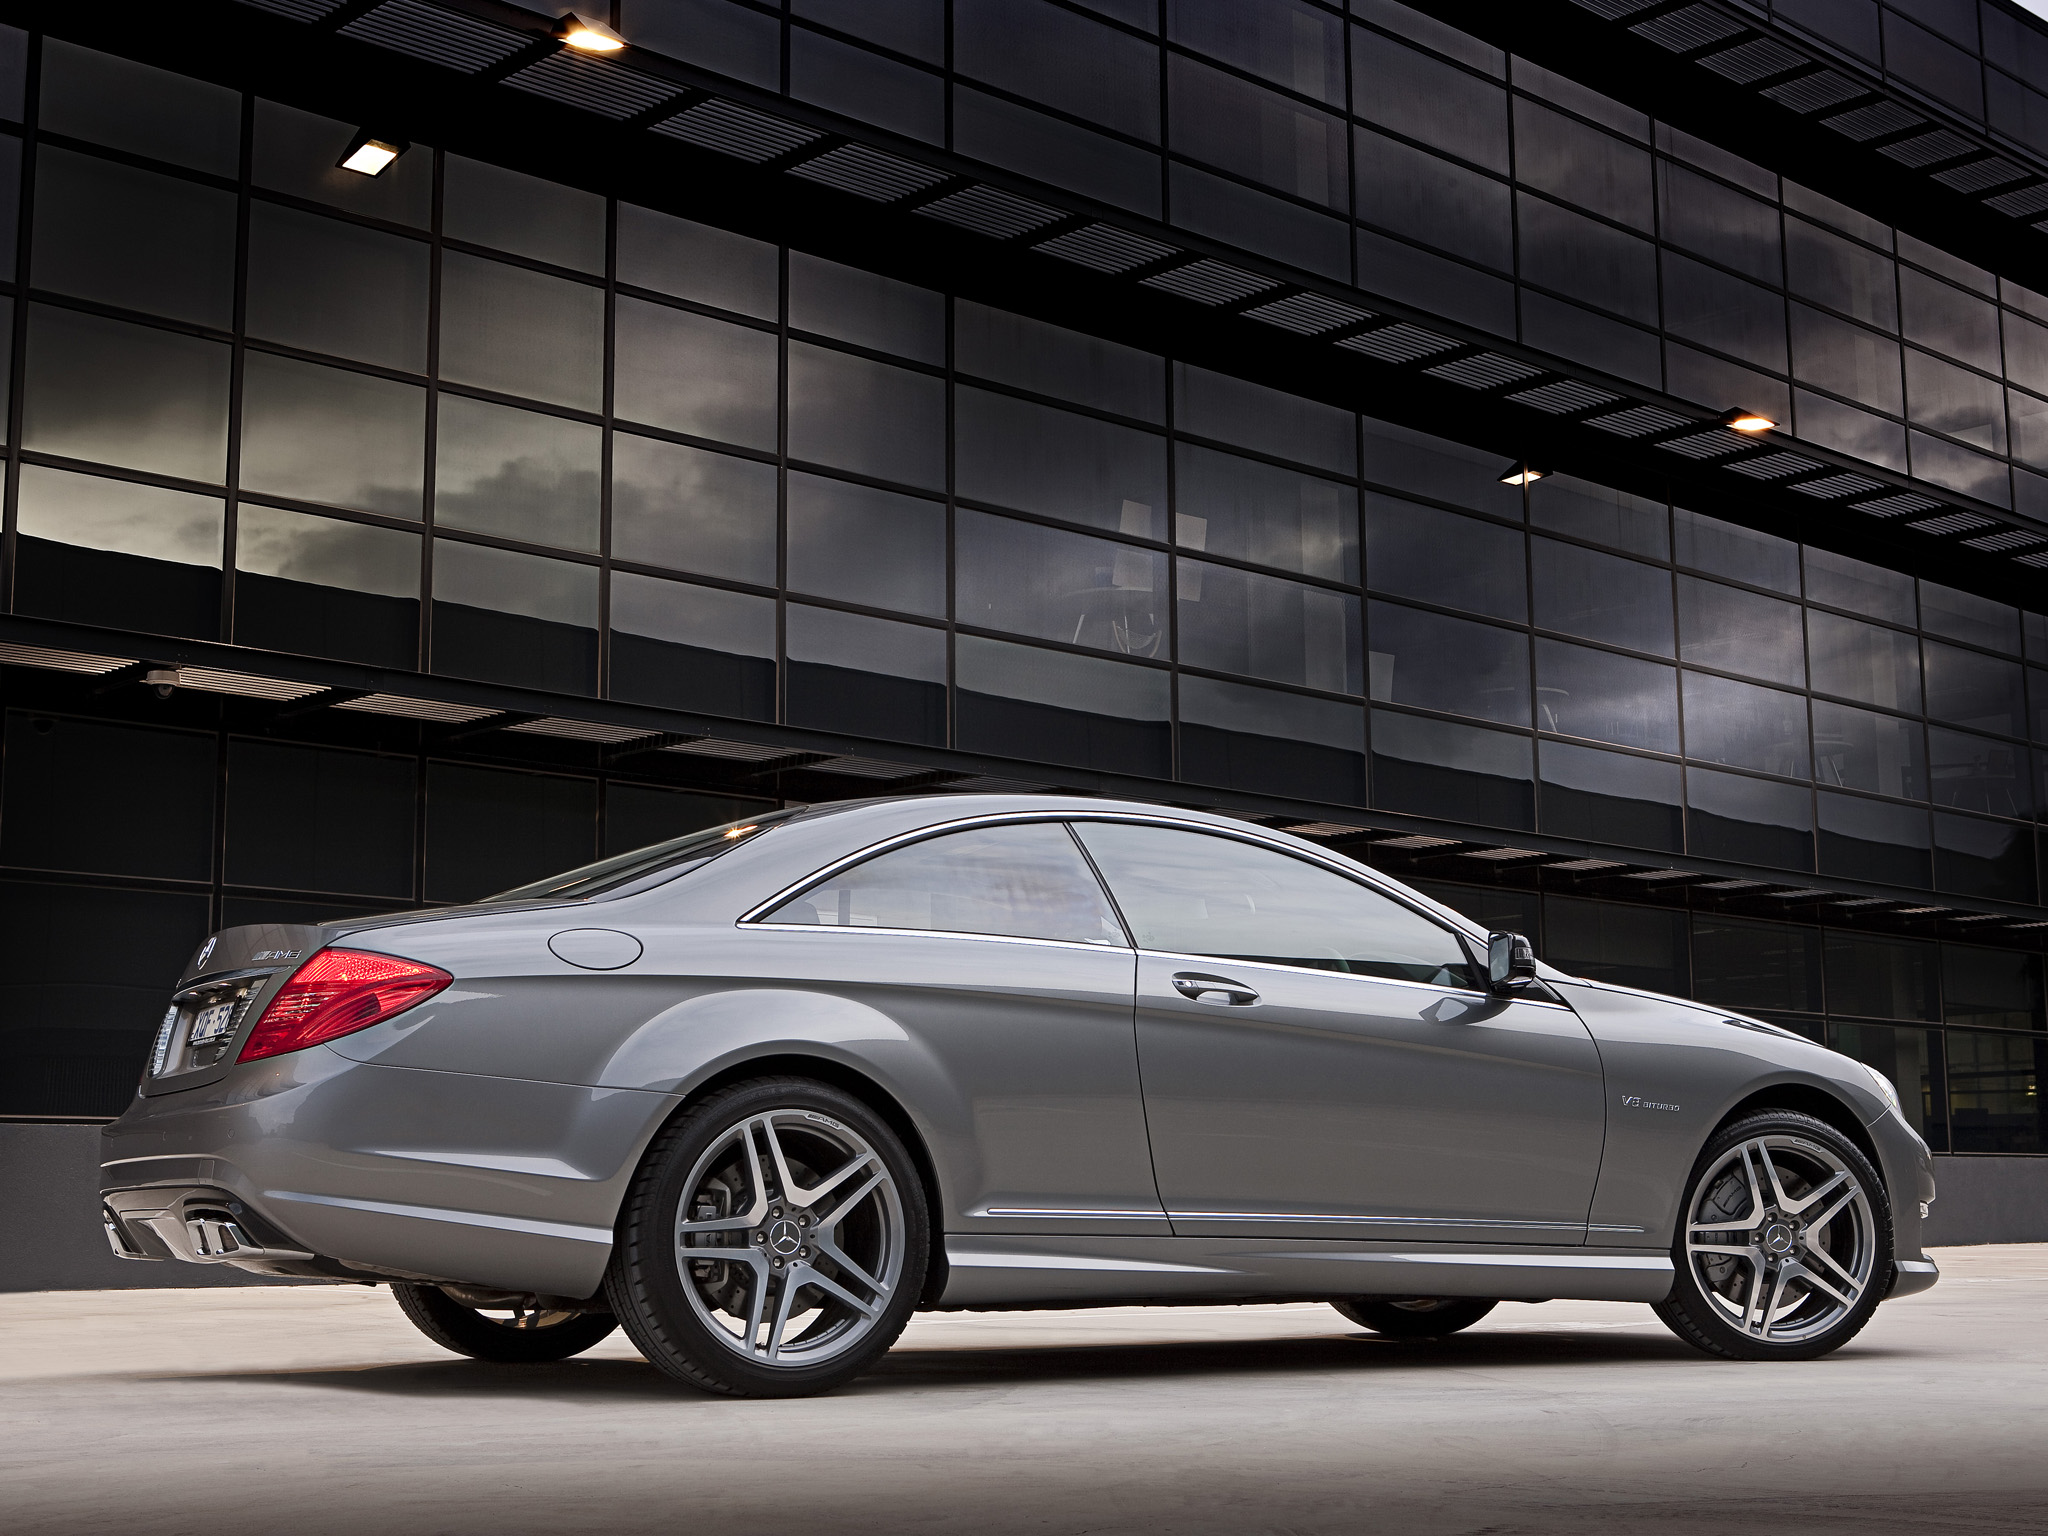 Mercedes benz cl63 amg photos photogallery with 107 pics for Mercedes benz cl63